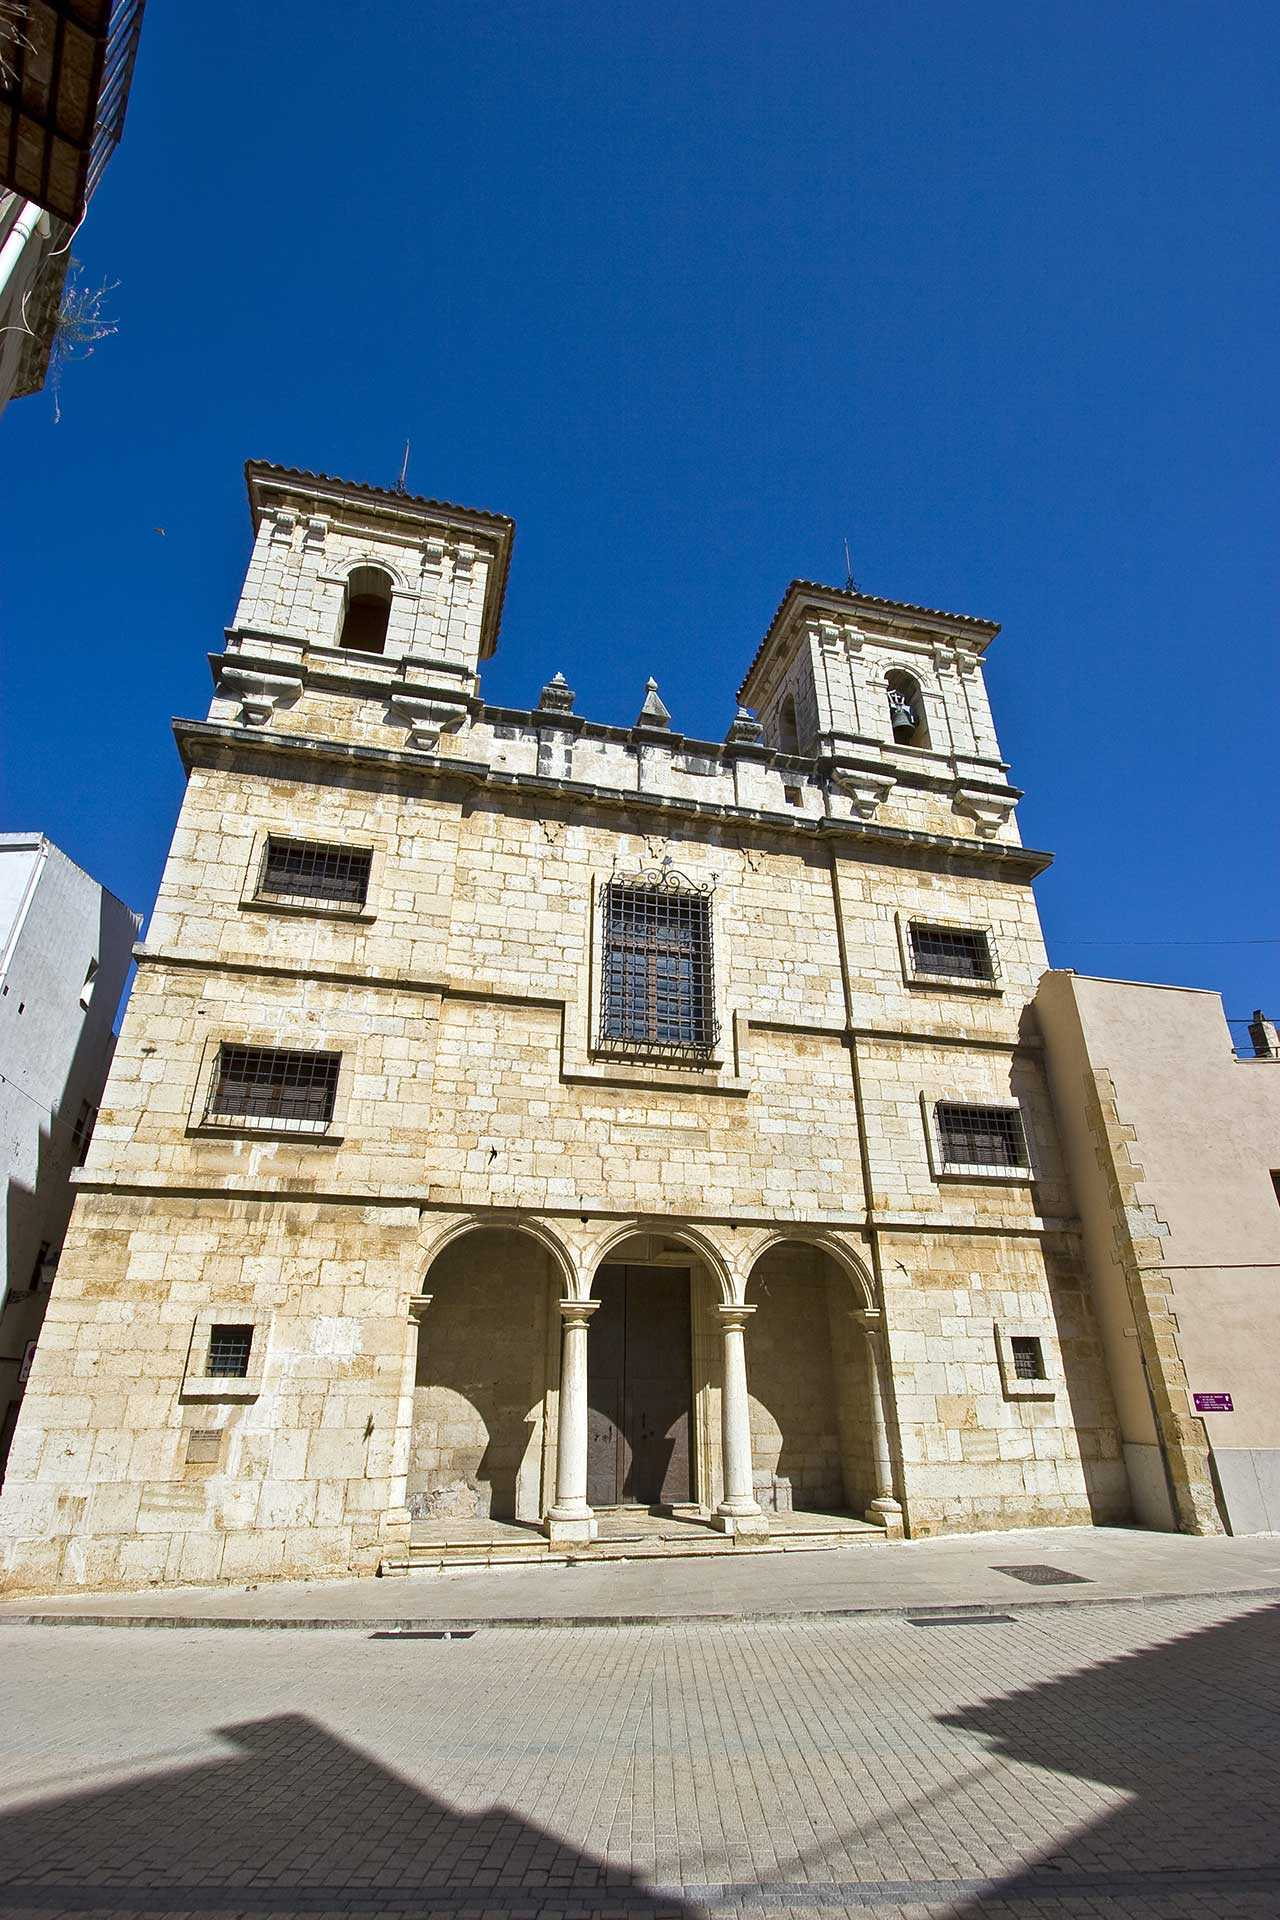 The Church and Convent of the Monjas Agustinas